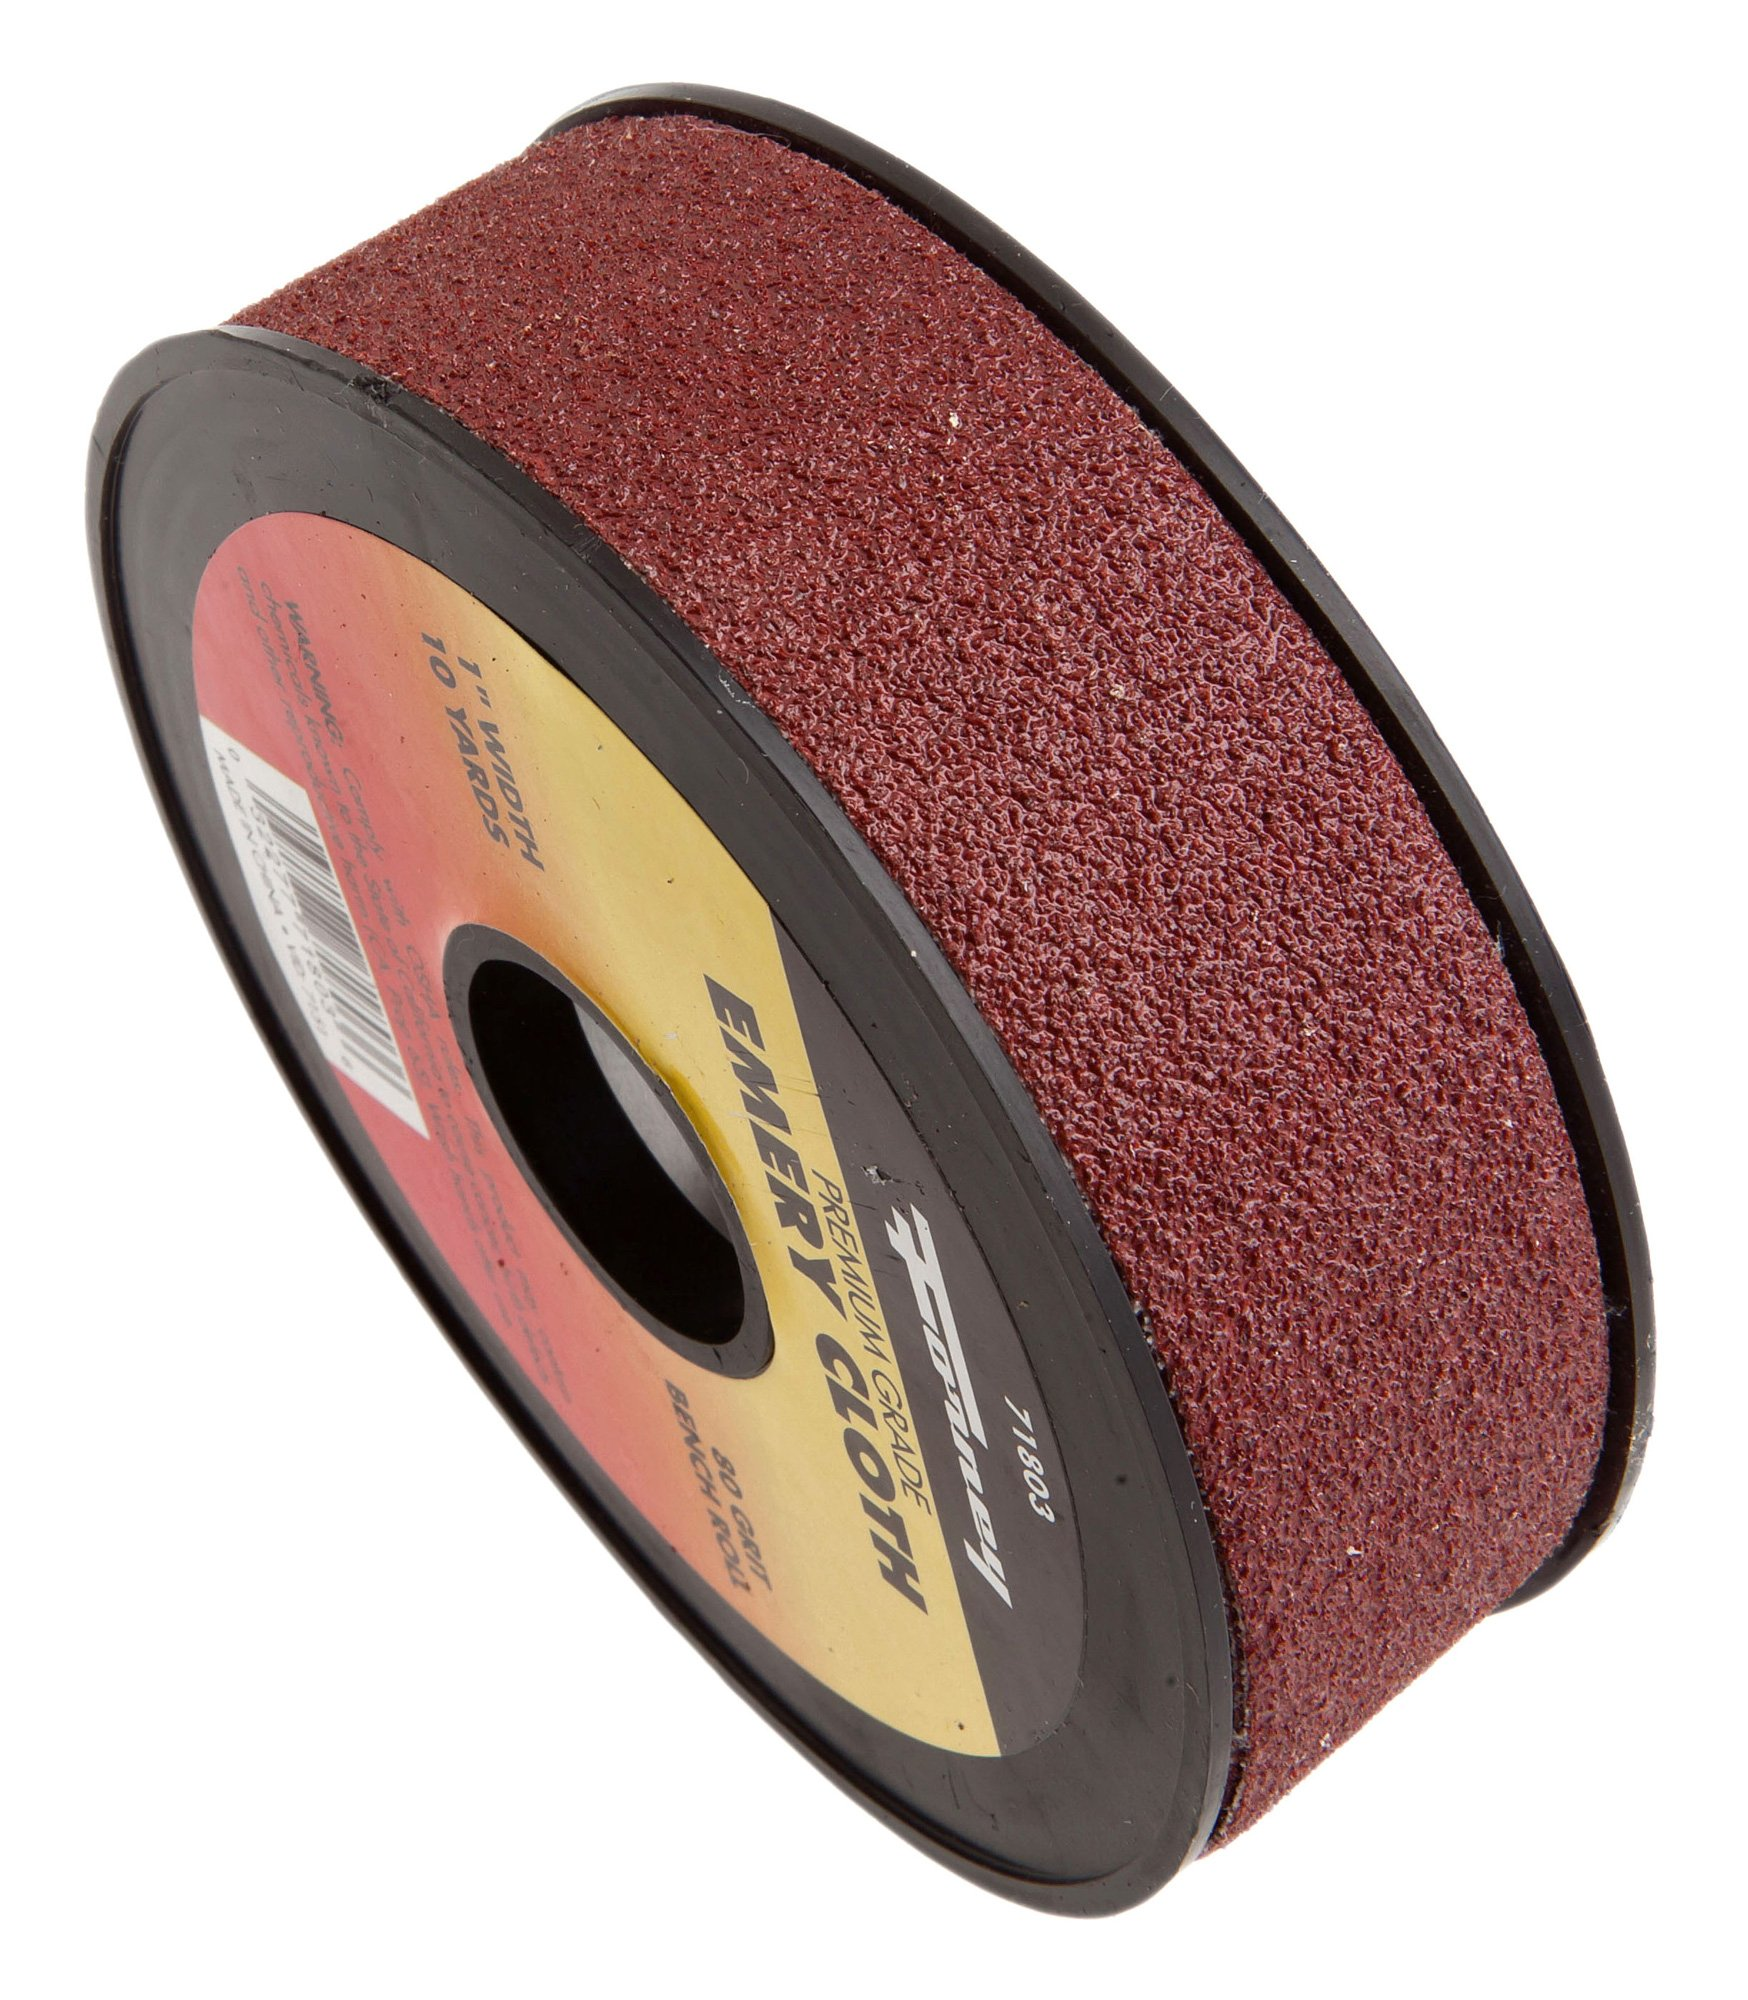 Forney 71803 Emery Cloth, 80-Grit, 1-Inch-by-10-Yard Bench Roll by Forney (Image #1)